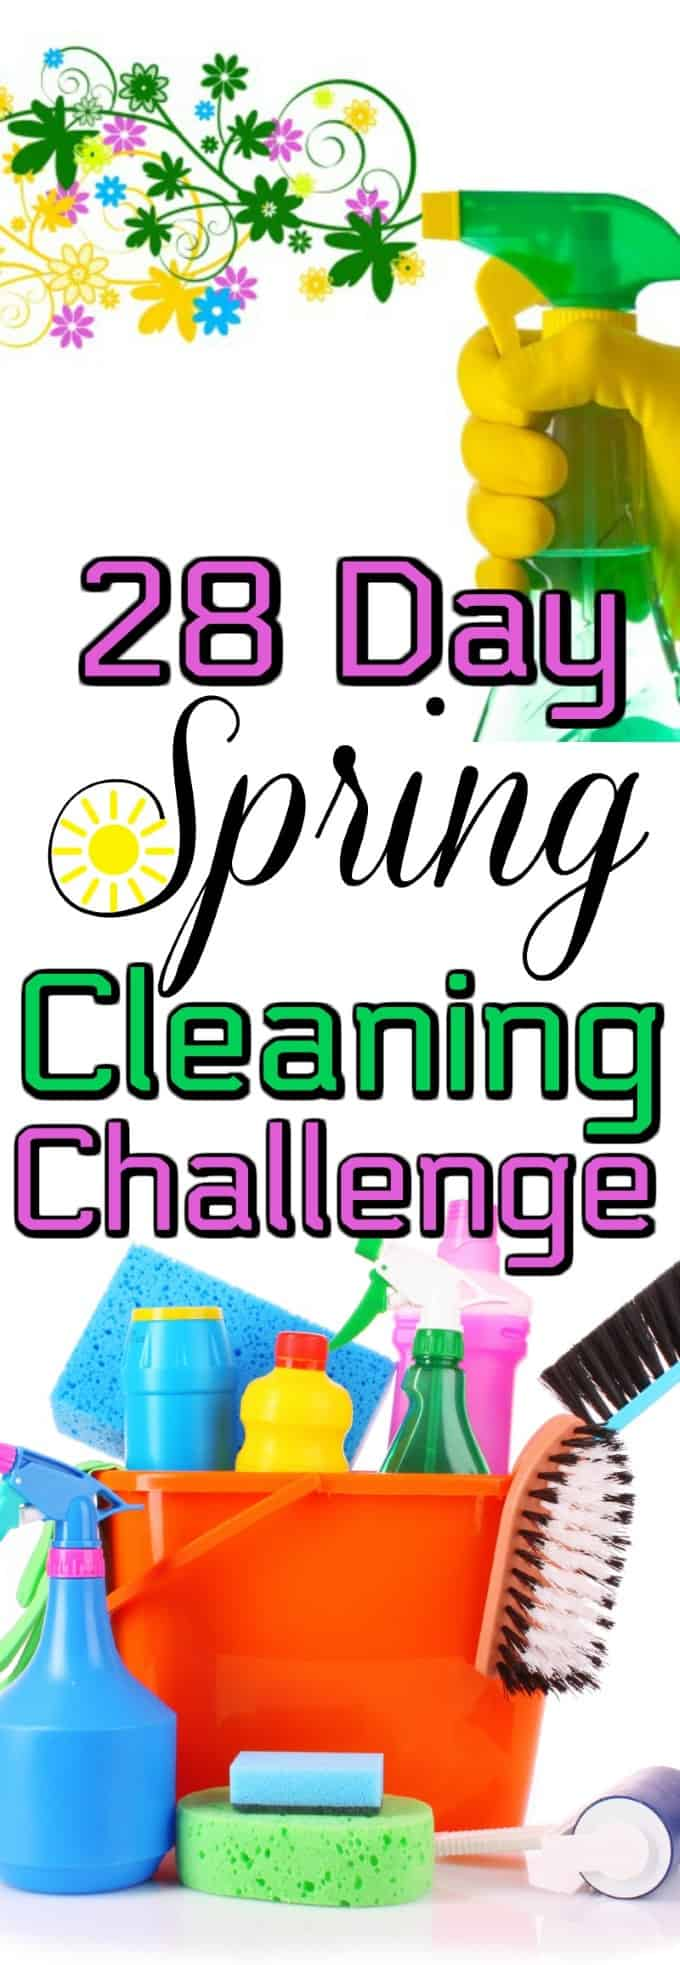 28 Day Spring Cleaning Challenge has a free printable to help with your spring cleaning checklist. Open the windows and let the deep cleaning start! #springcleaning #challenge